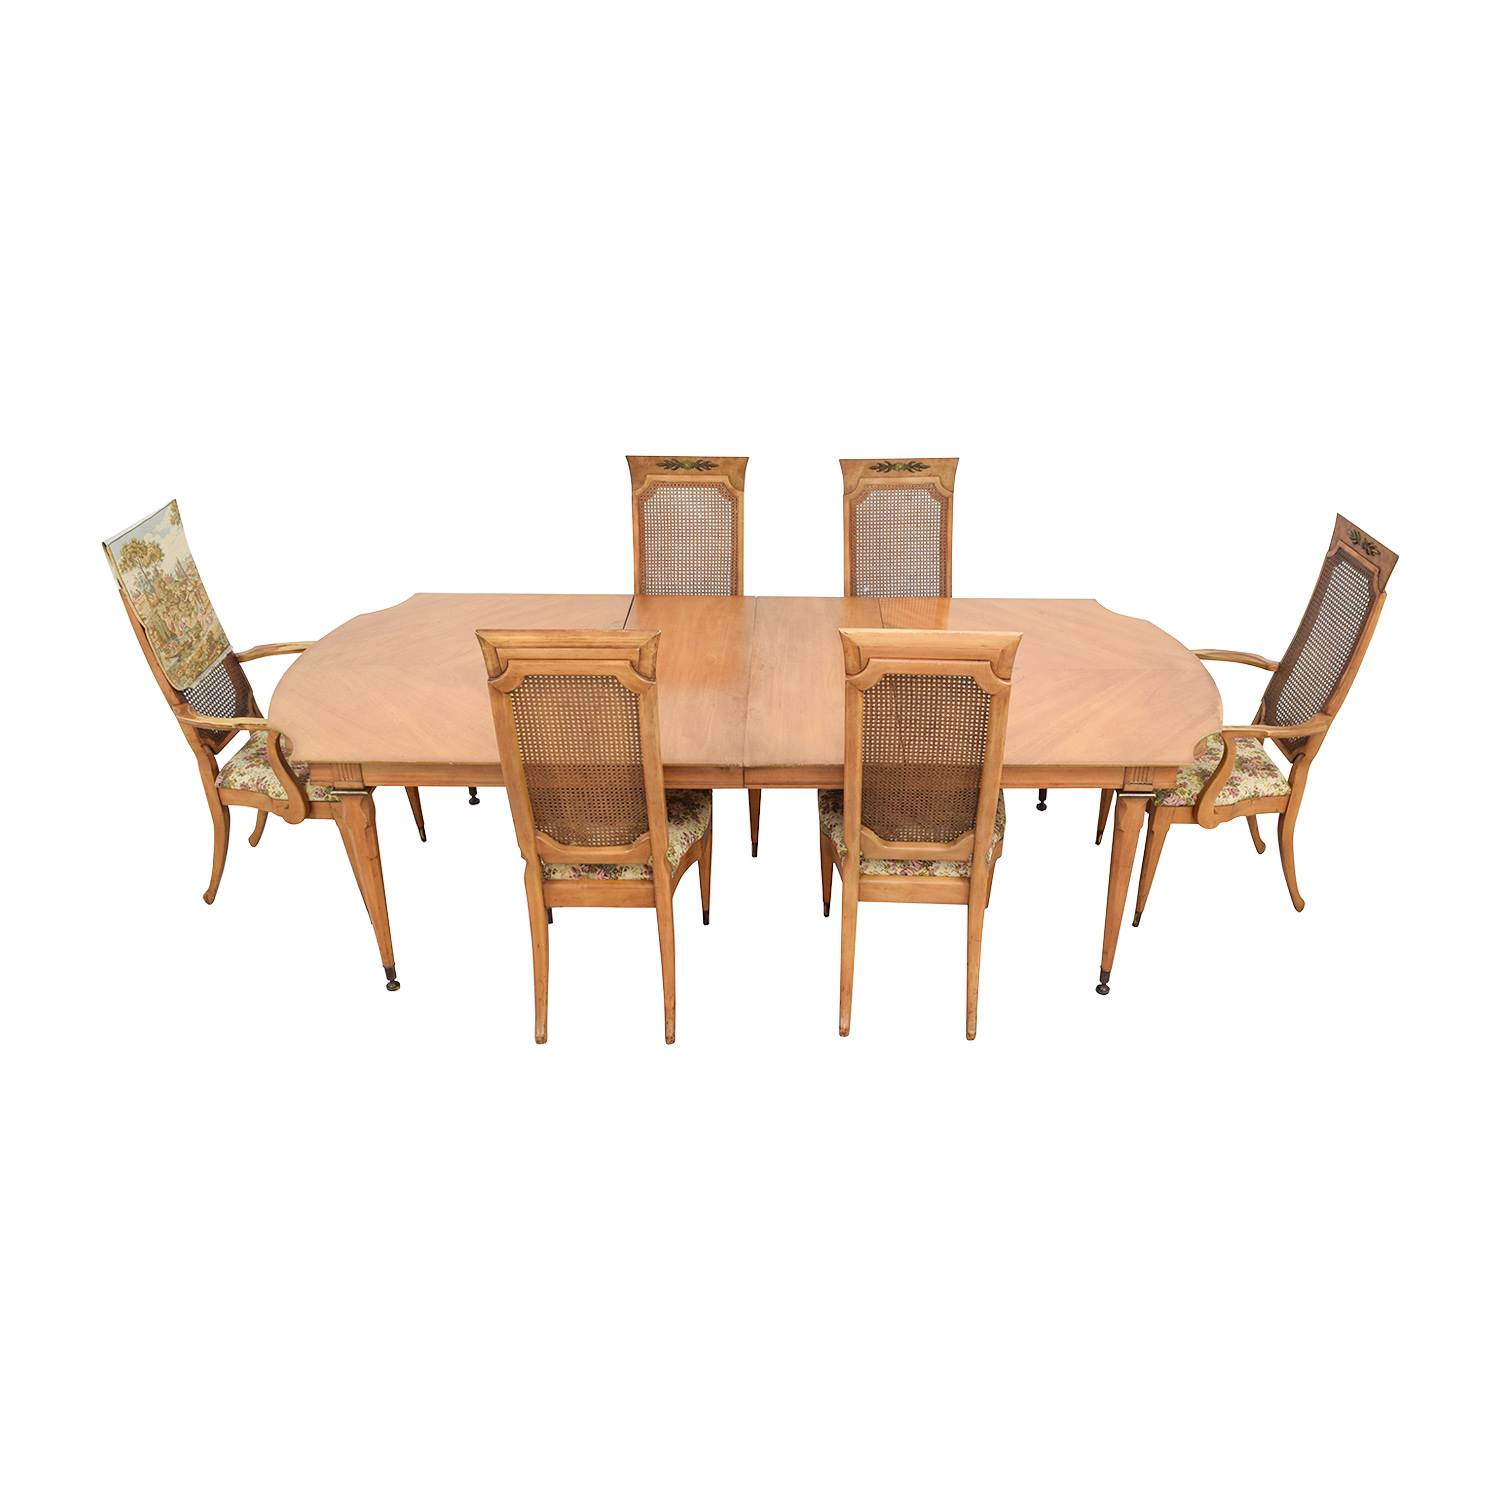 Merz 1968 Merz 1968 Wood Dining Set with Floral Upholstered Chairs coupon